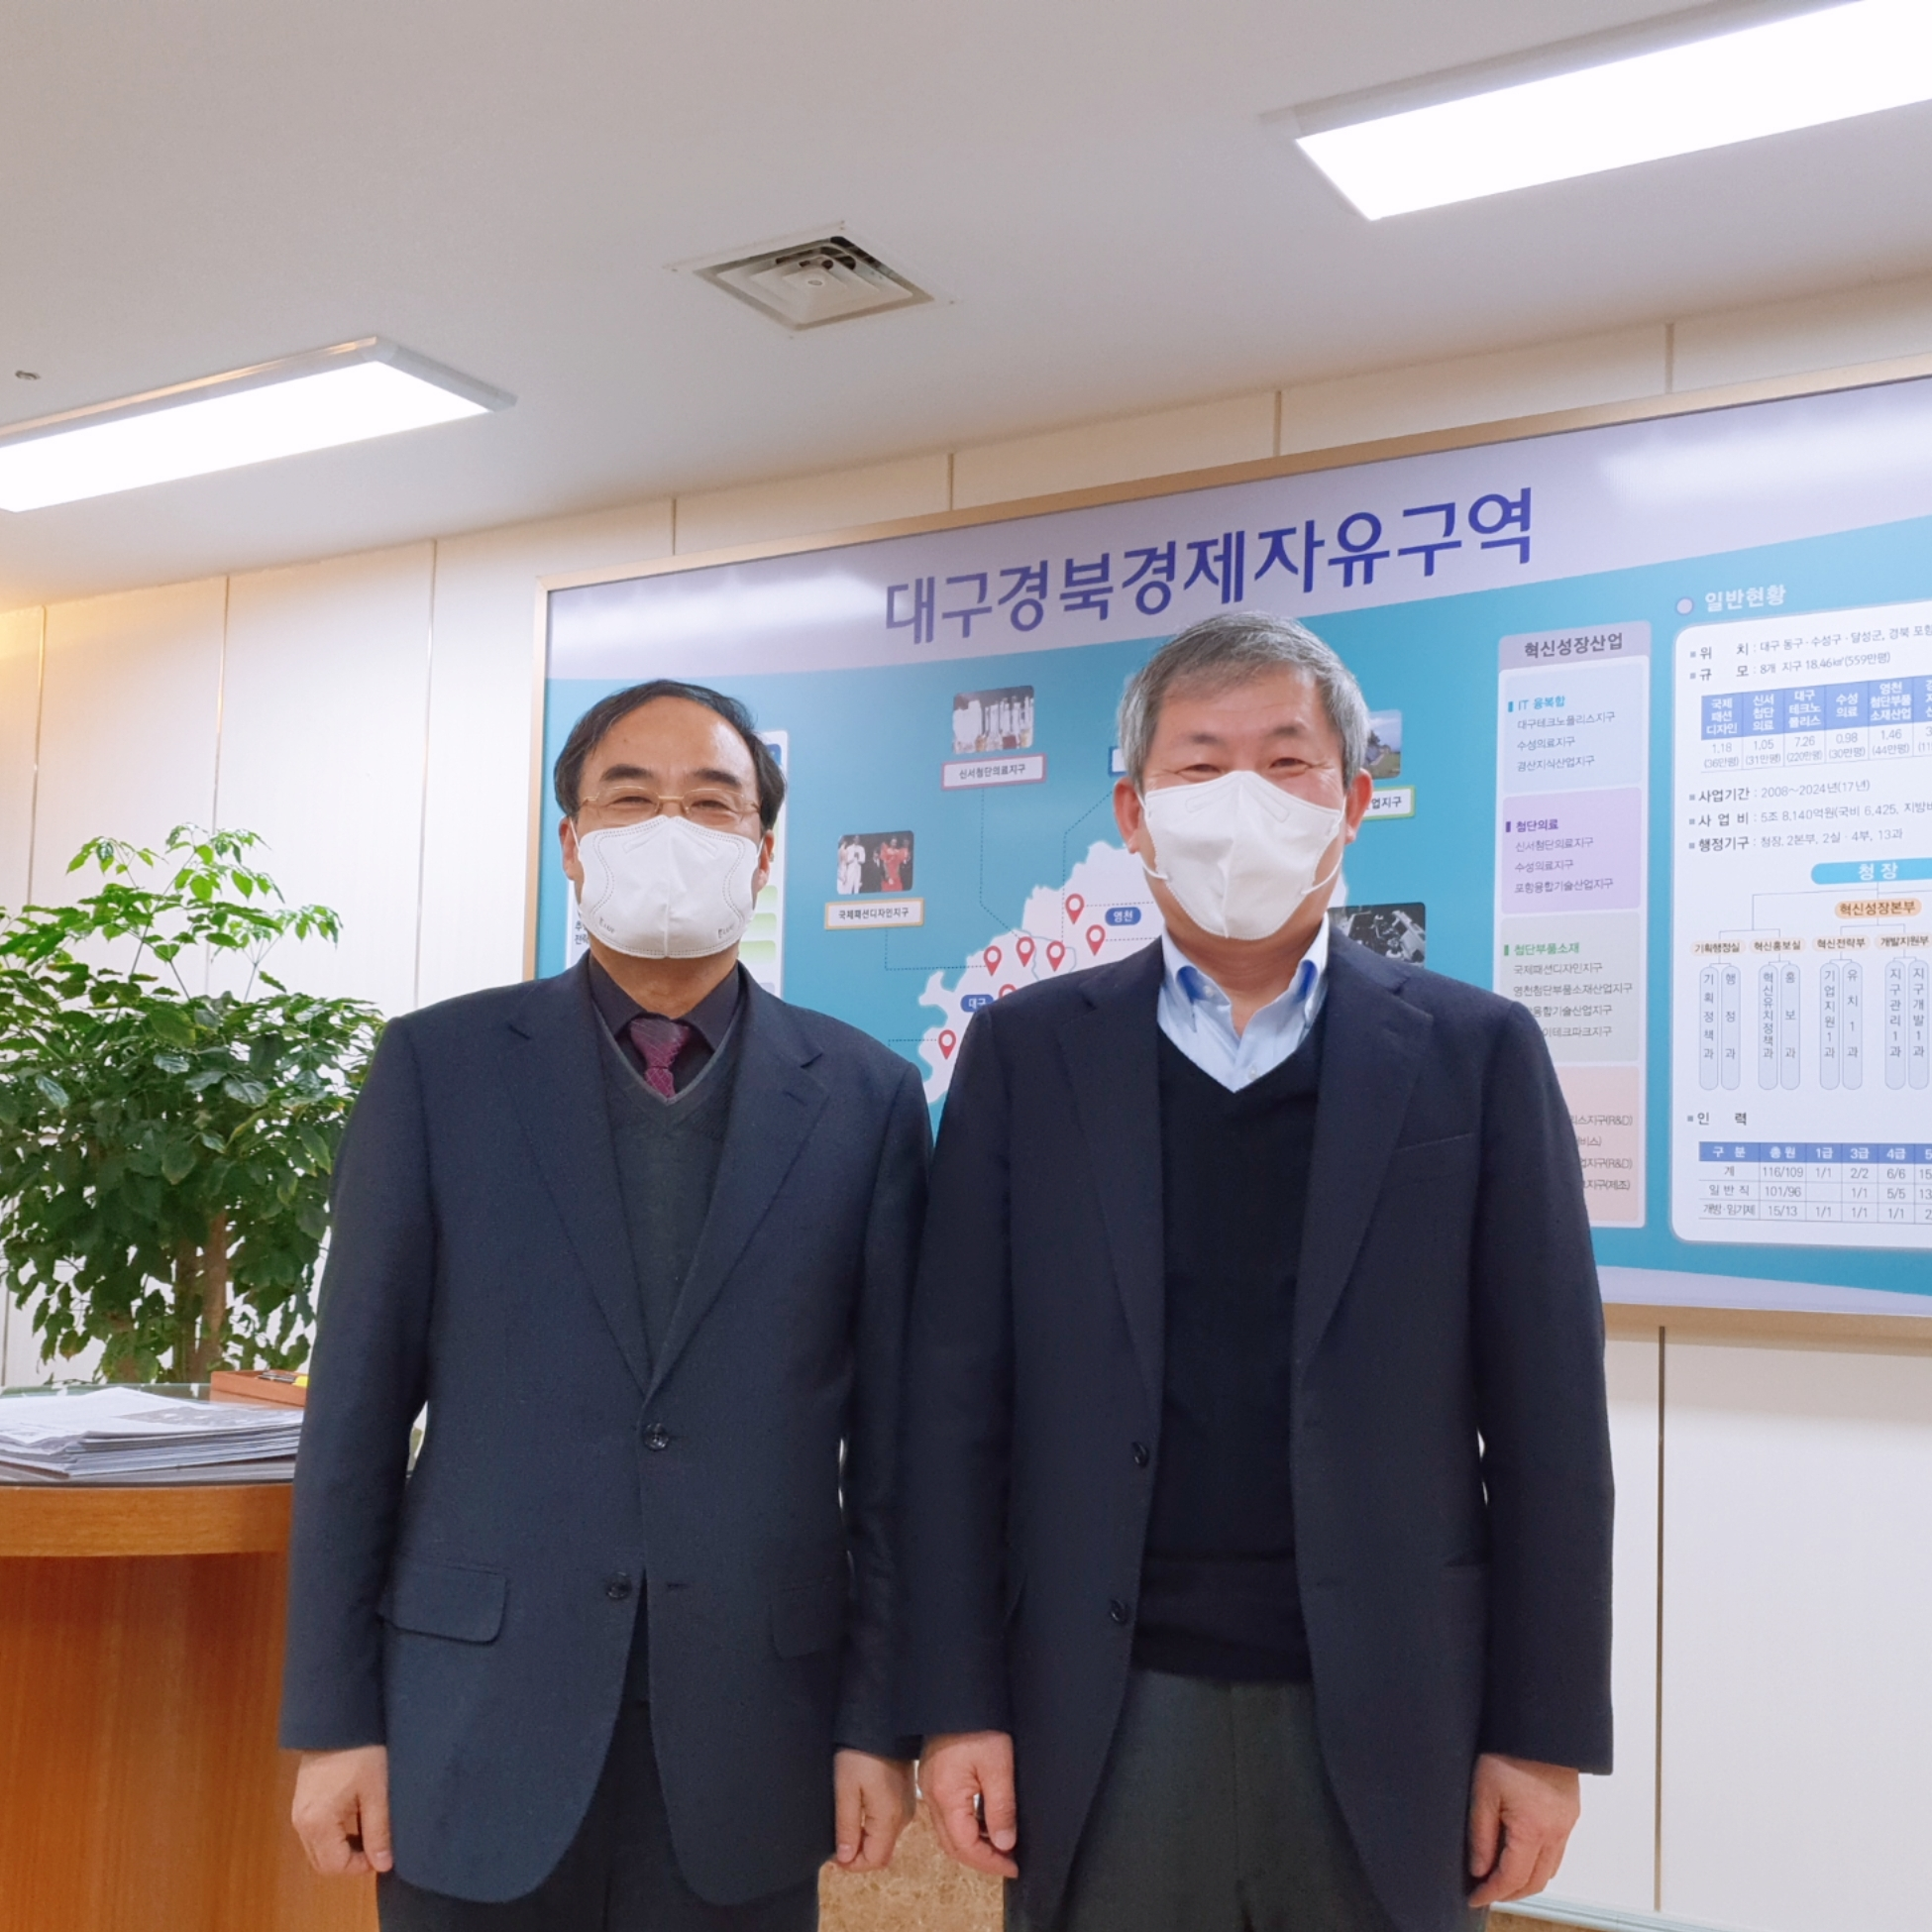 The President of a Conference for Gyeongbuk CCI visited DGFE...